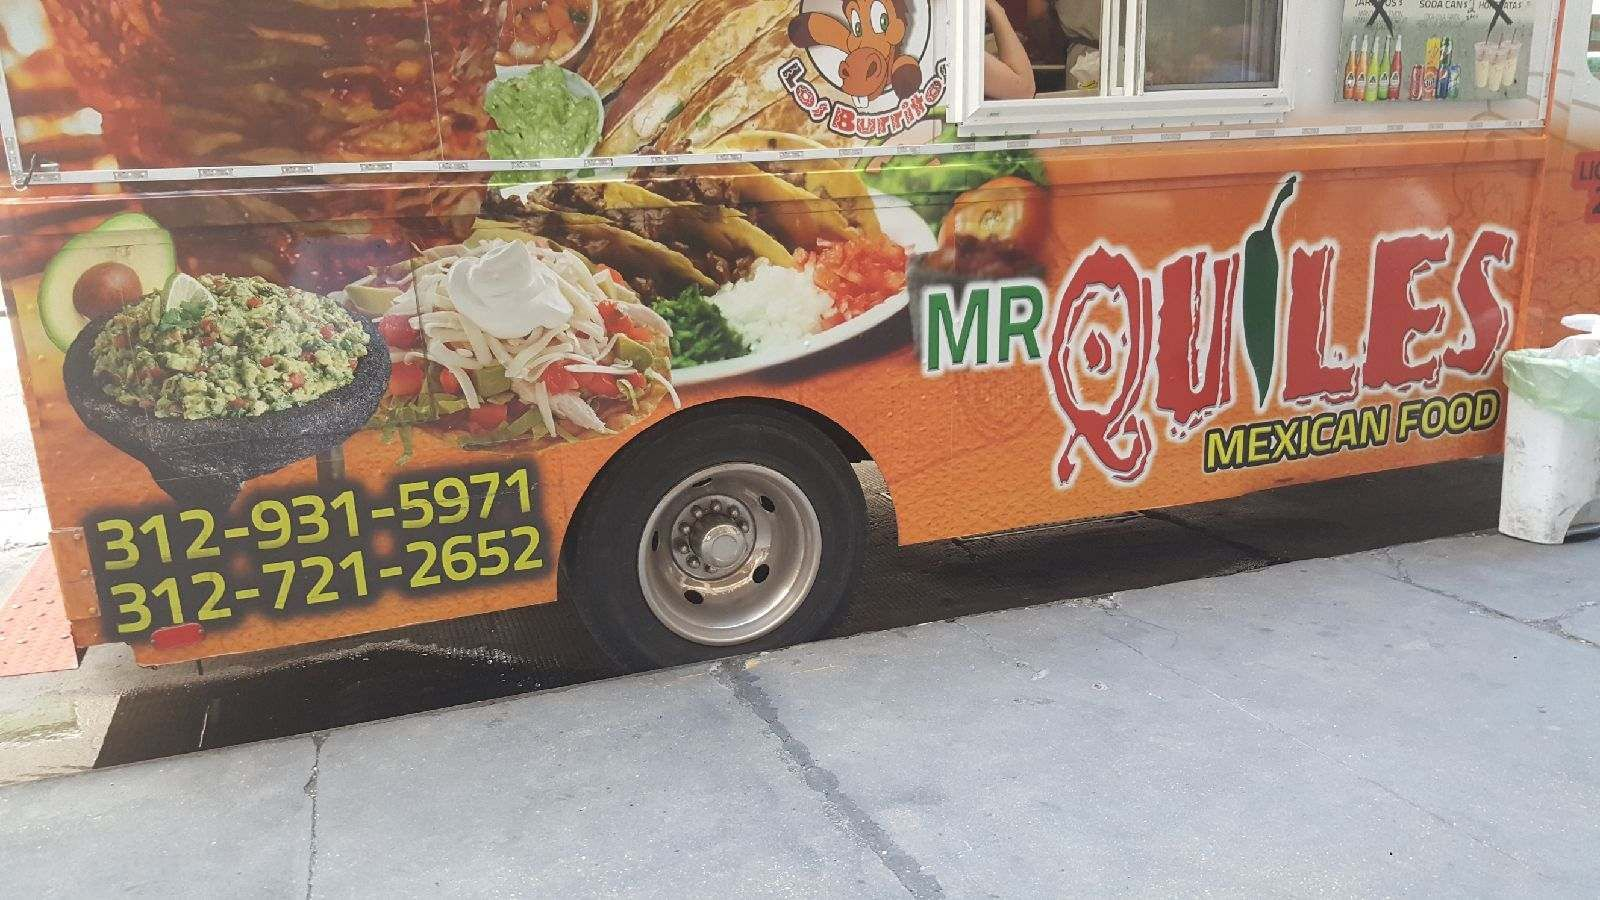 Back up taco truck option or get bbq boss food truck